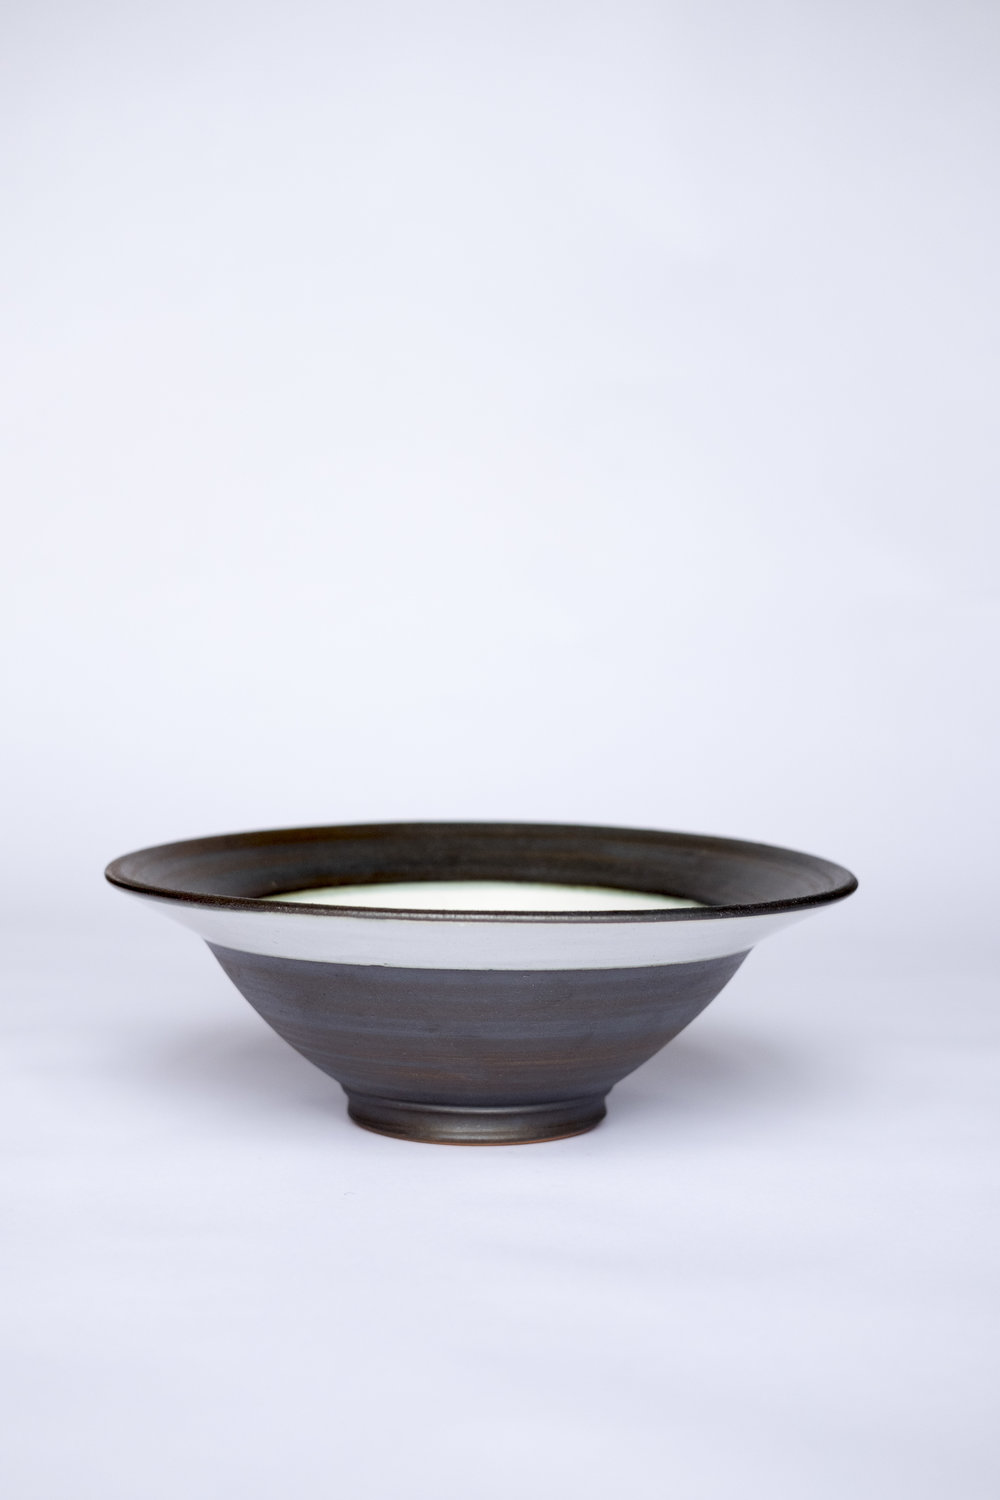 Kinsman Blake Ceramic Fruit Bowl Black and White Design